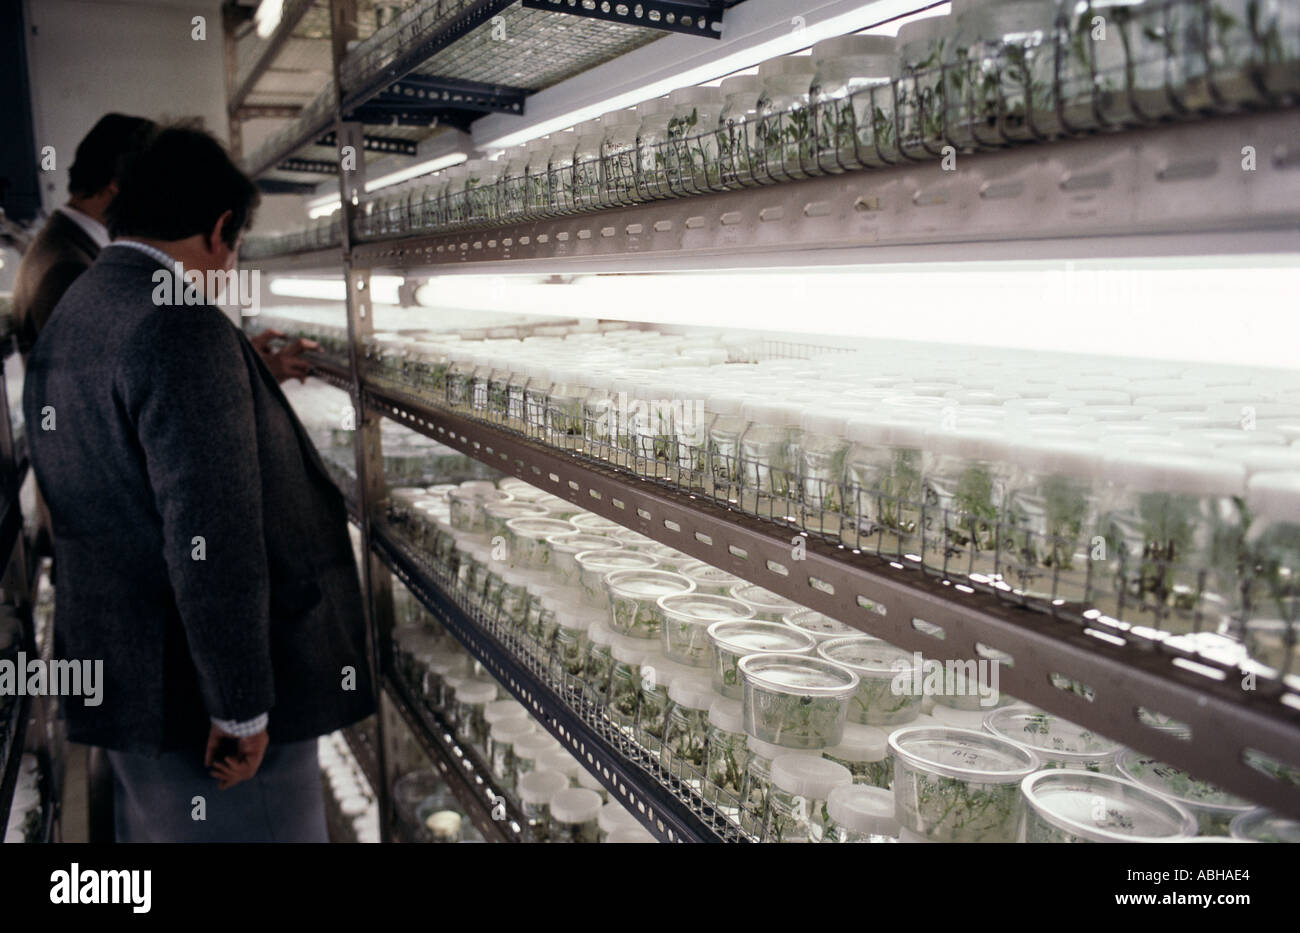 Growing room with micropropagated plants under growing lights on shelves - Stock Image